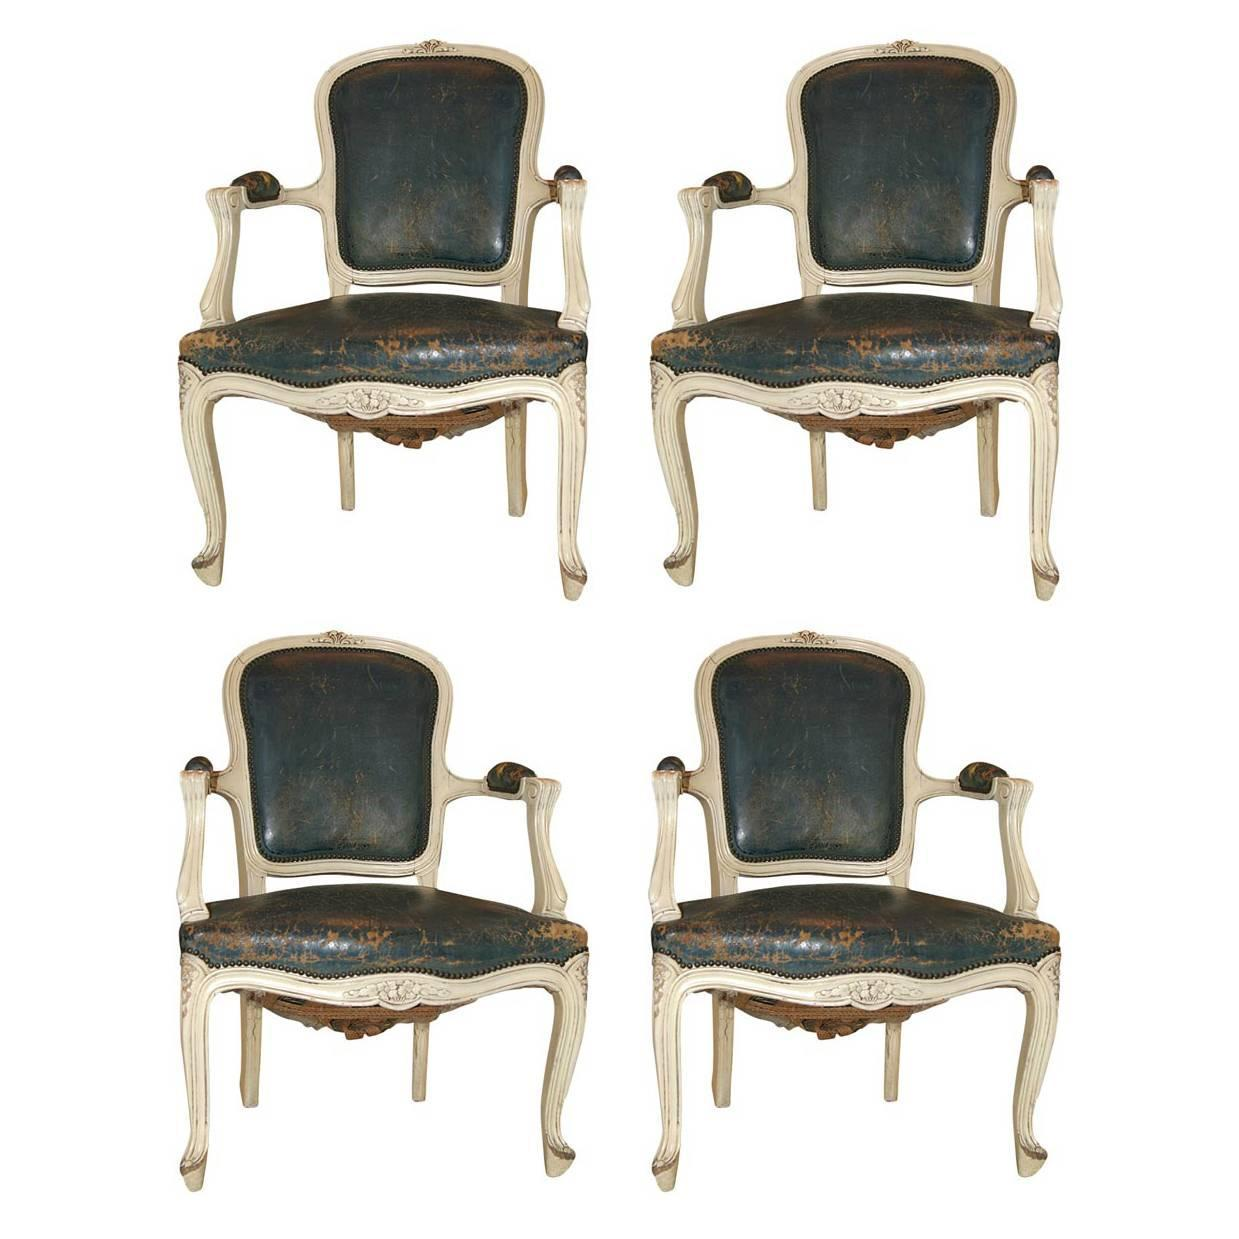 Louis xv style fauteuils set of four for sale at 1stdibs - Fauteuil style louis xv ...